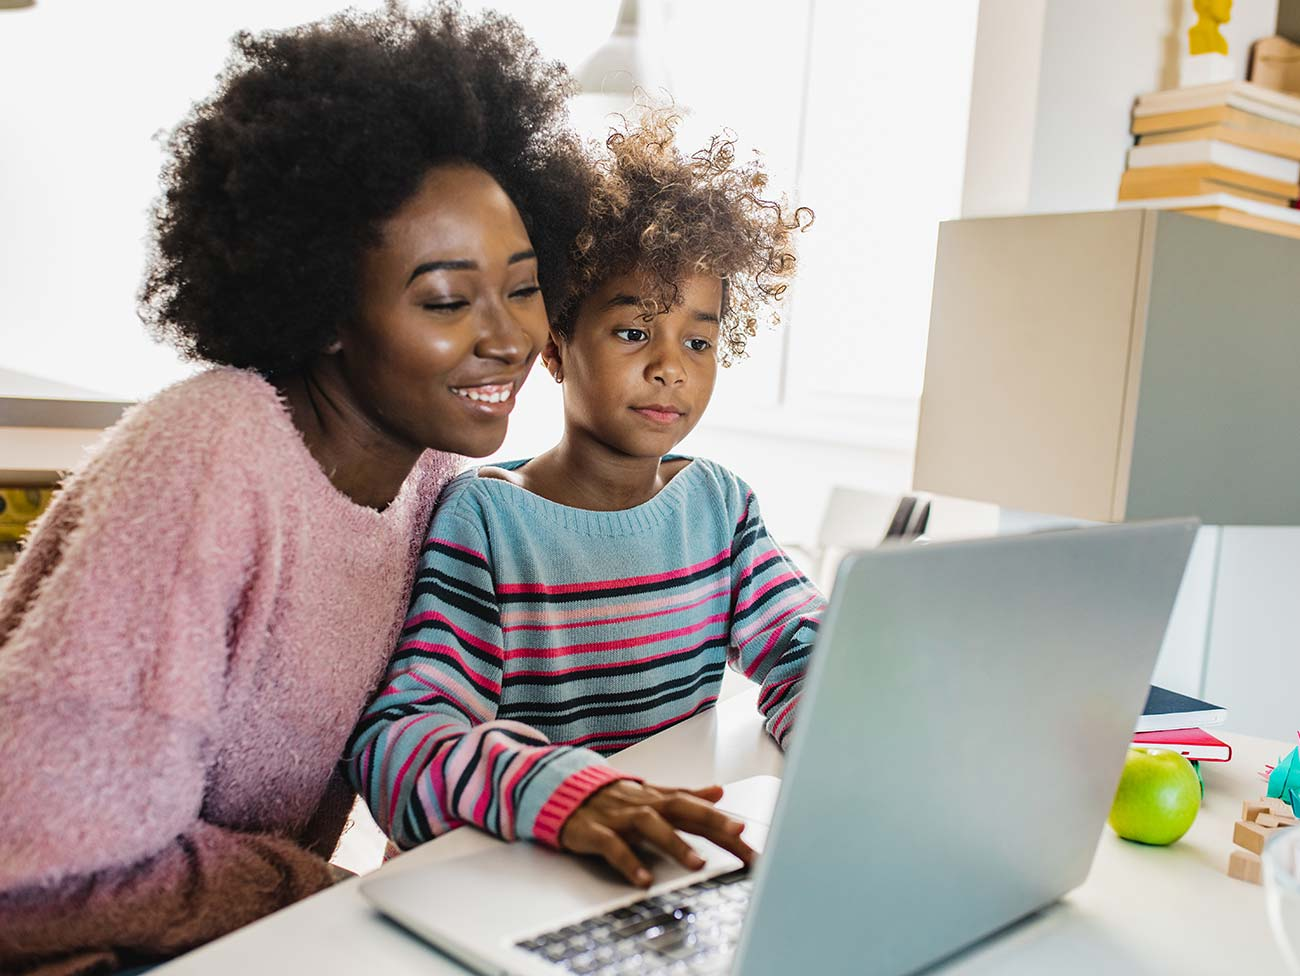 Black mother helping her daughter with school work at home on a laptop